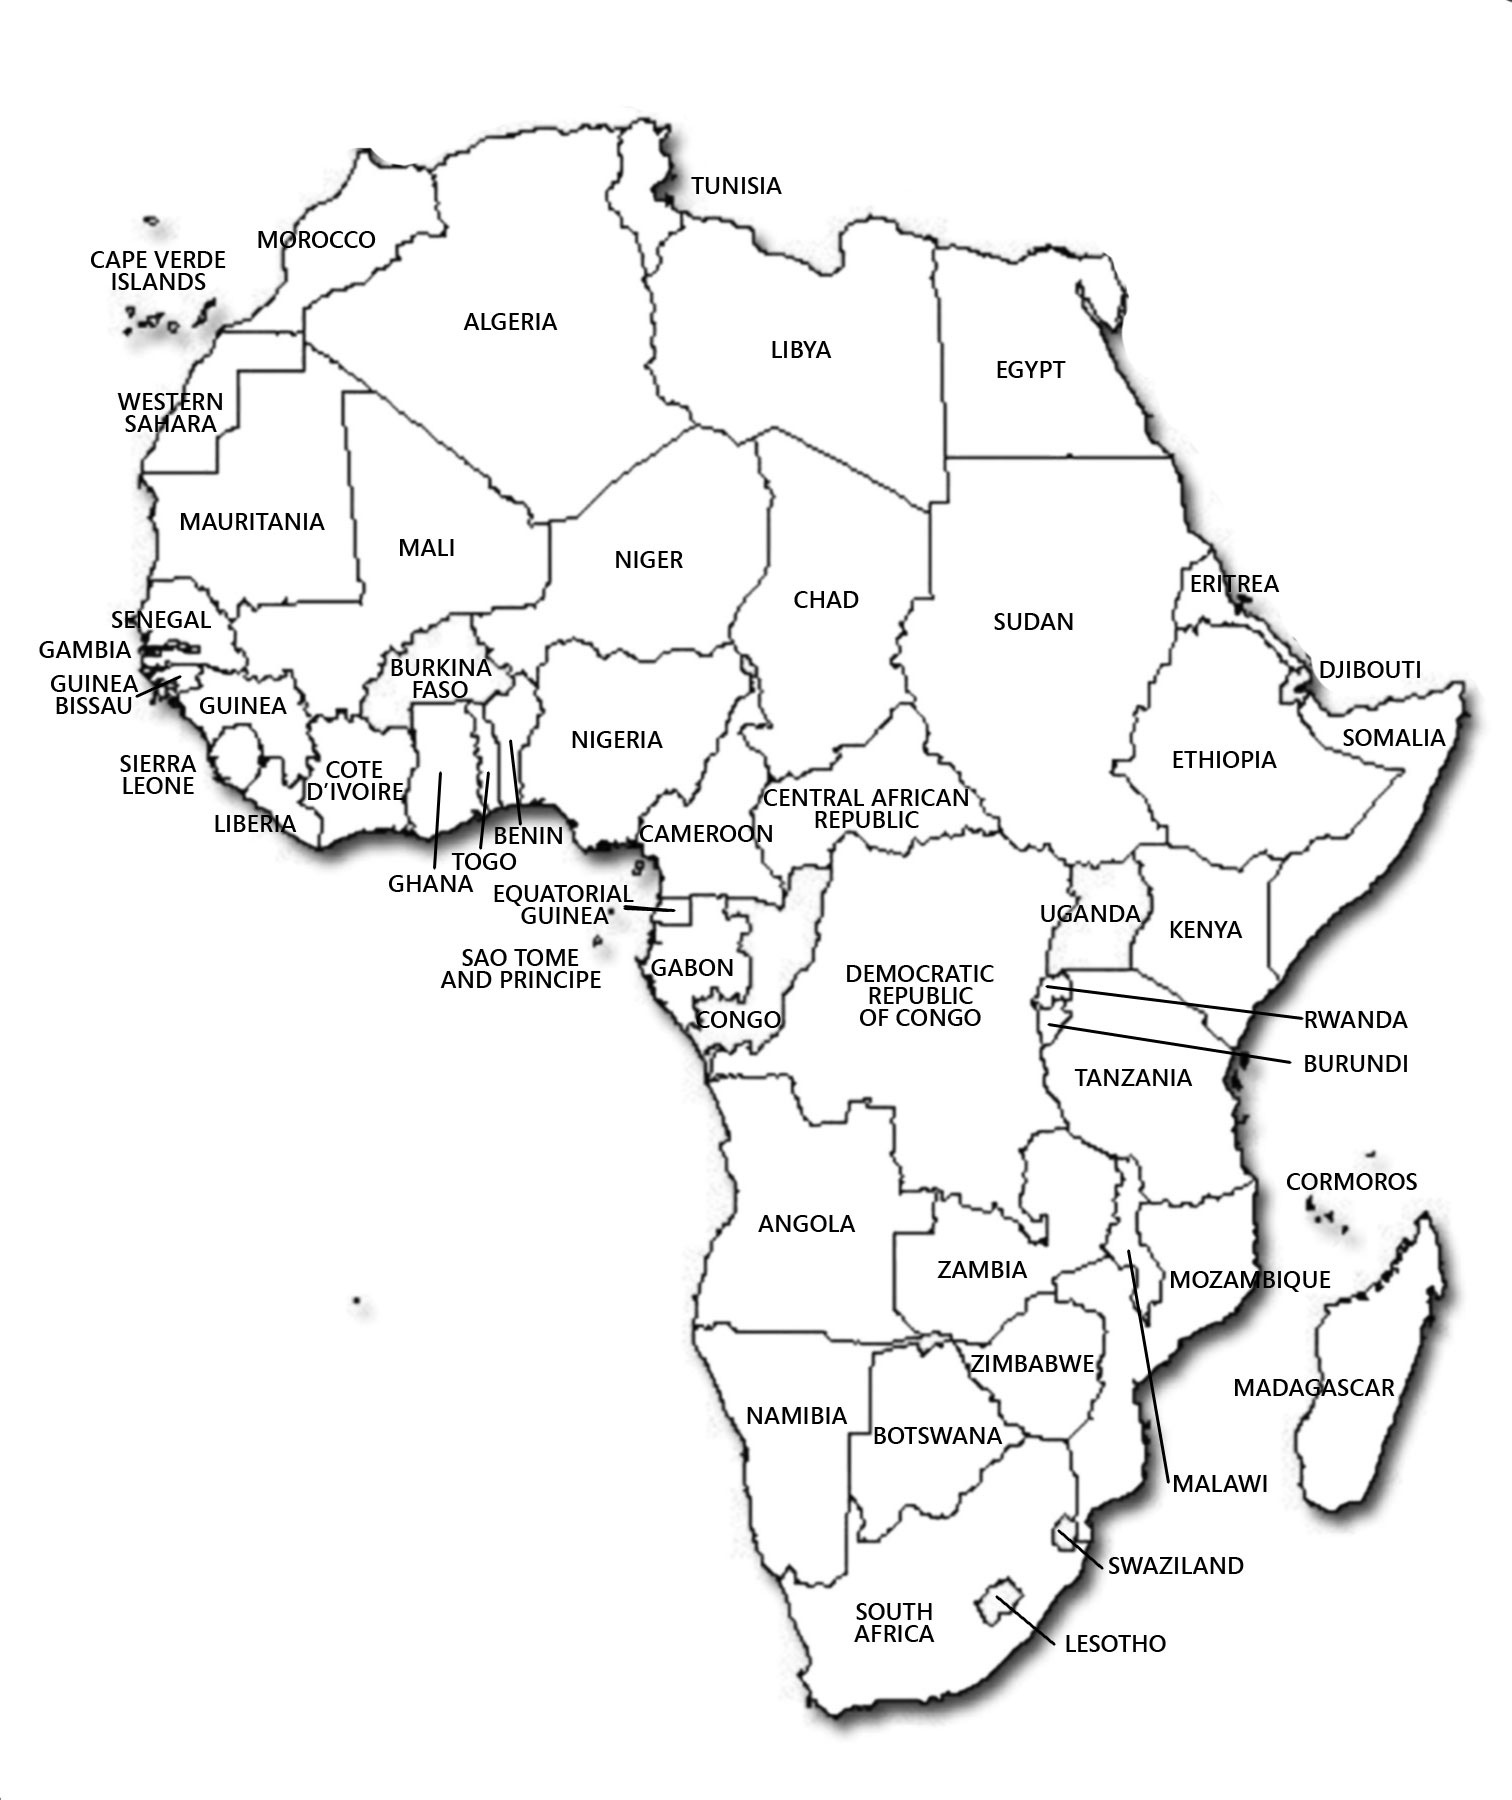 Maps Of Africa And African Countries Political Maps - Maps of africa